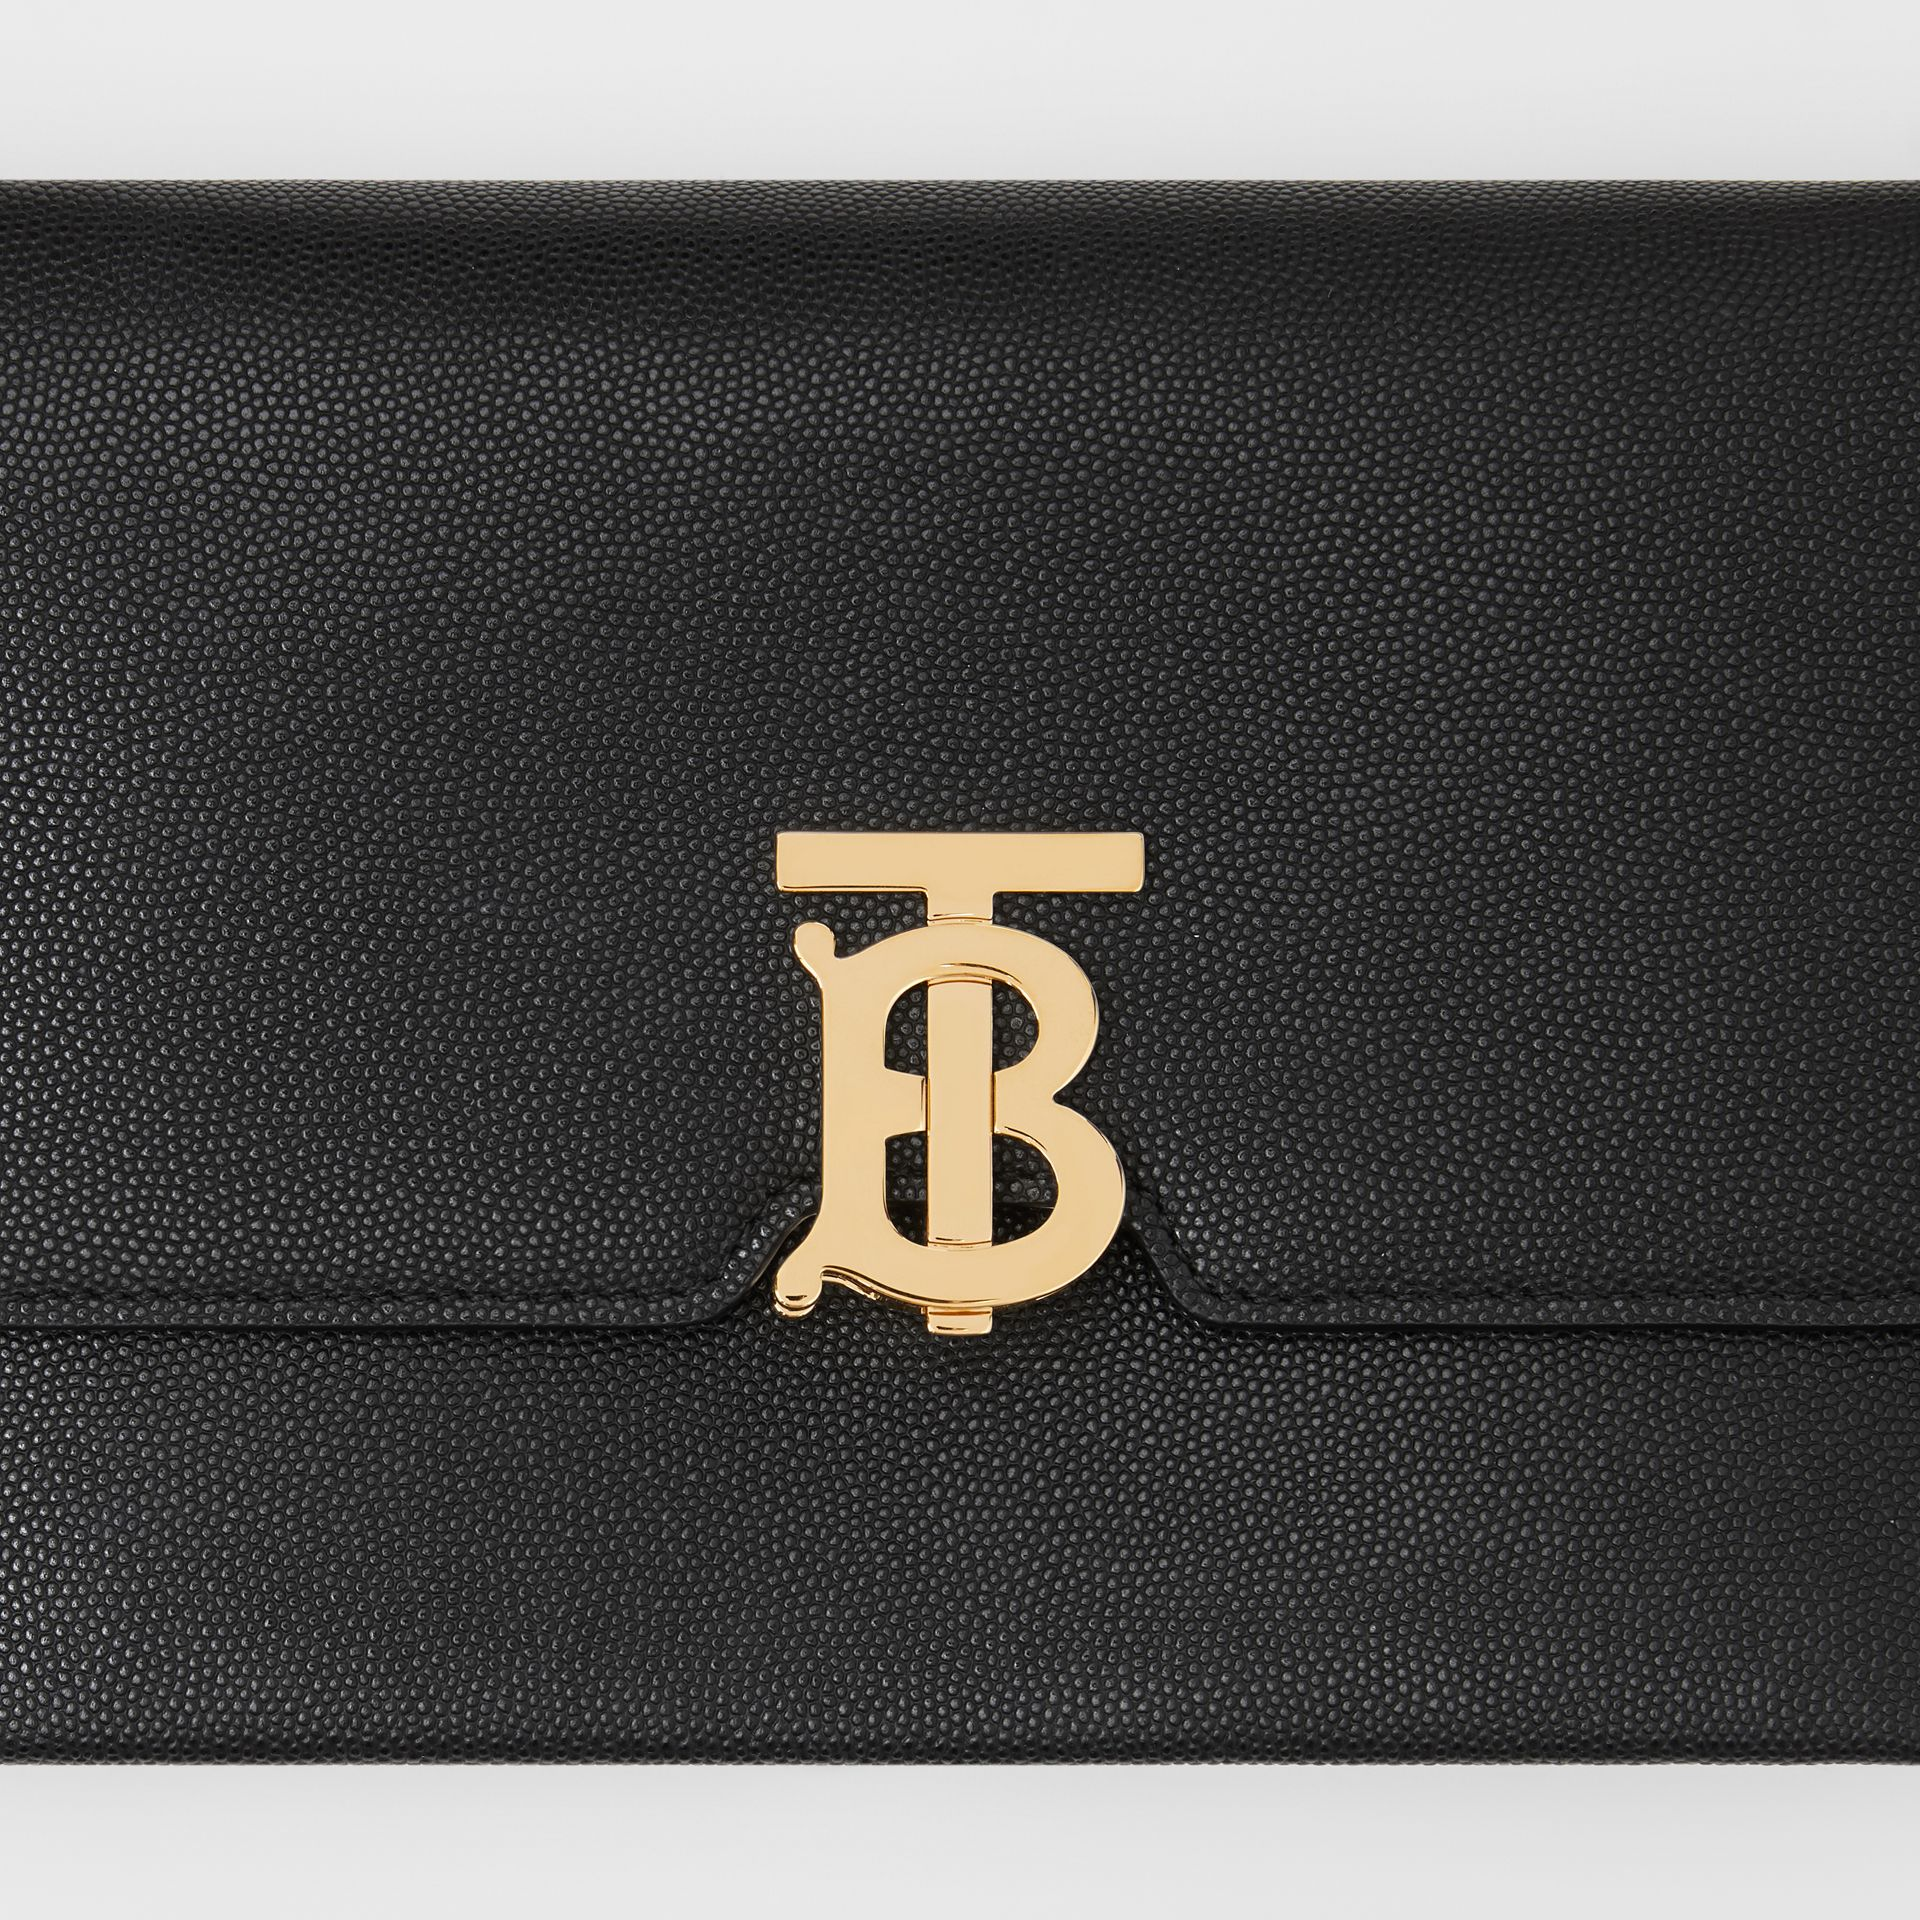 Small Monogram Motif Leather Crossbody Bag in Black - Women | Burberry - gallery image 1